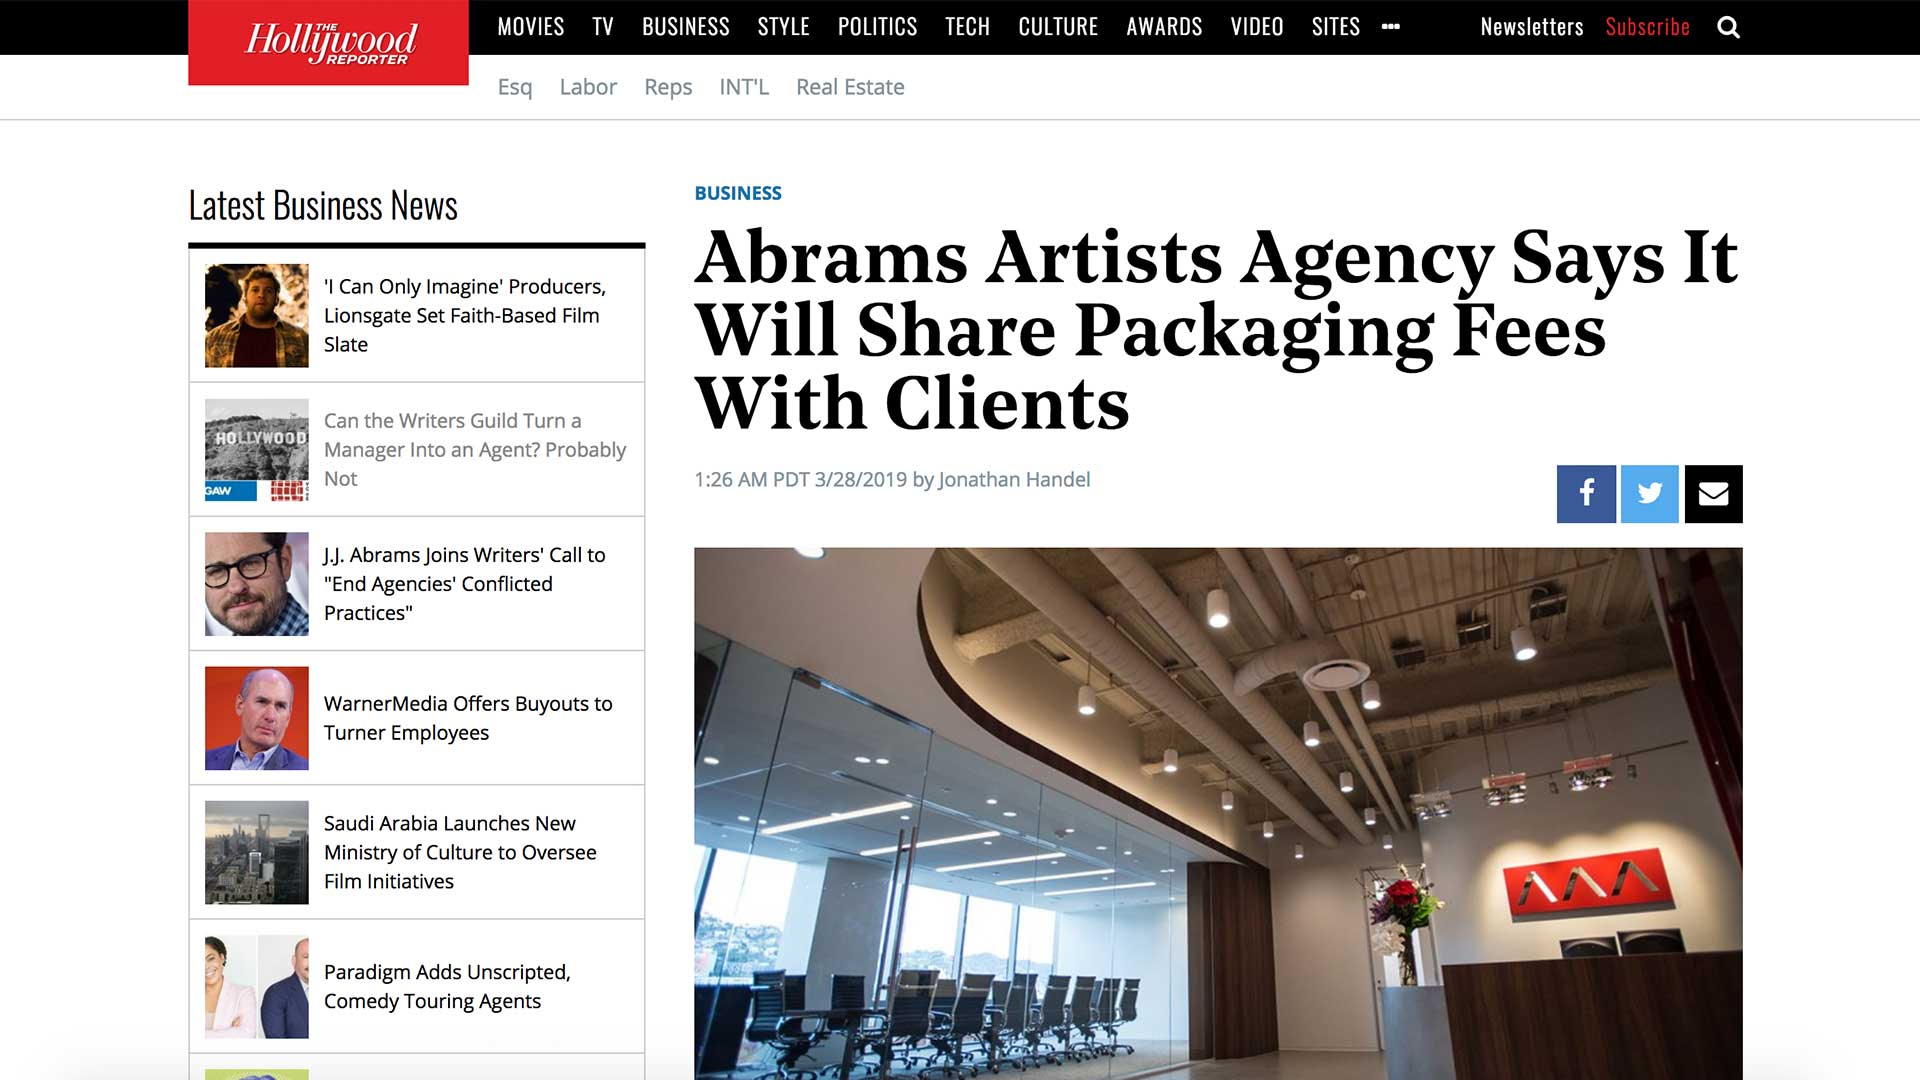 Fairness Rocks News Abrams Artists Agency Says It Will Share Packaging Fees With Clients